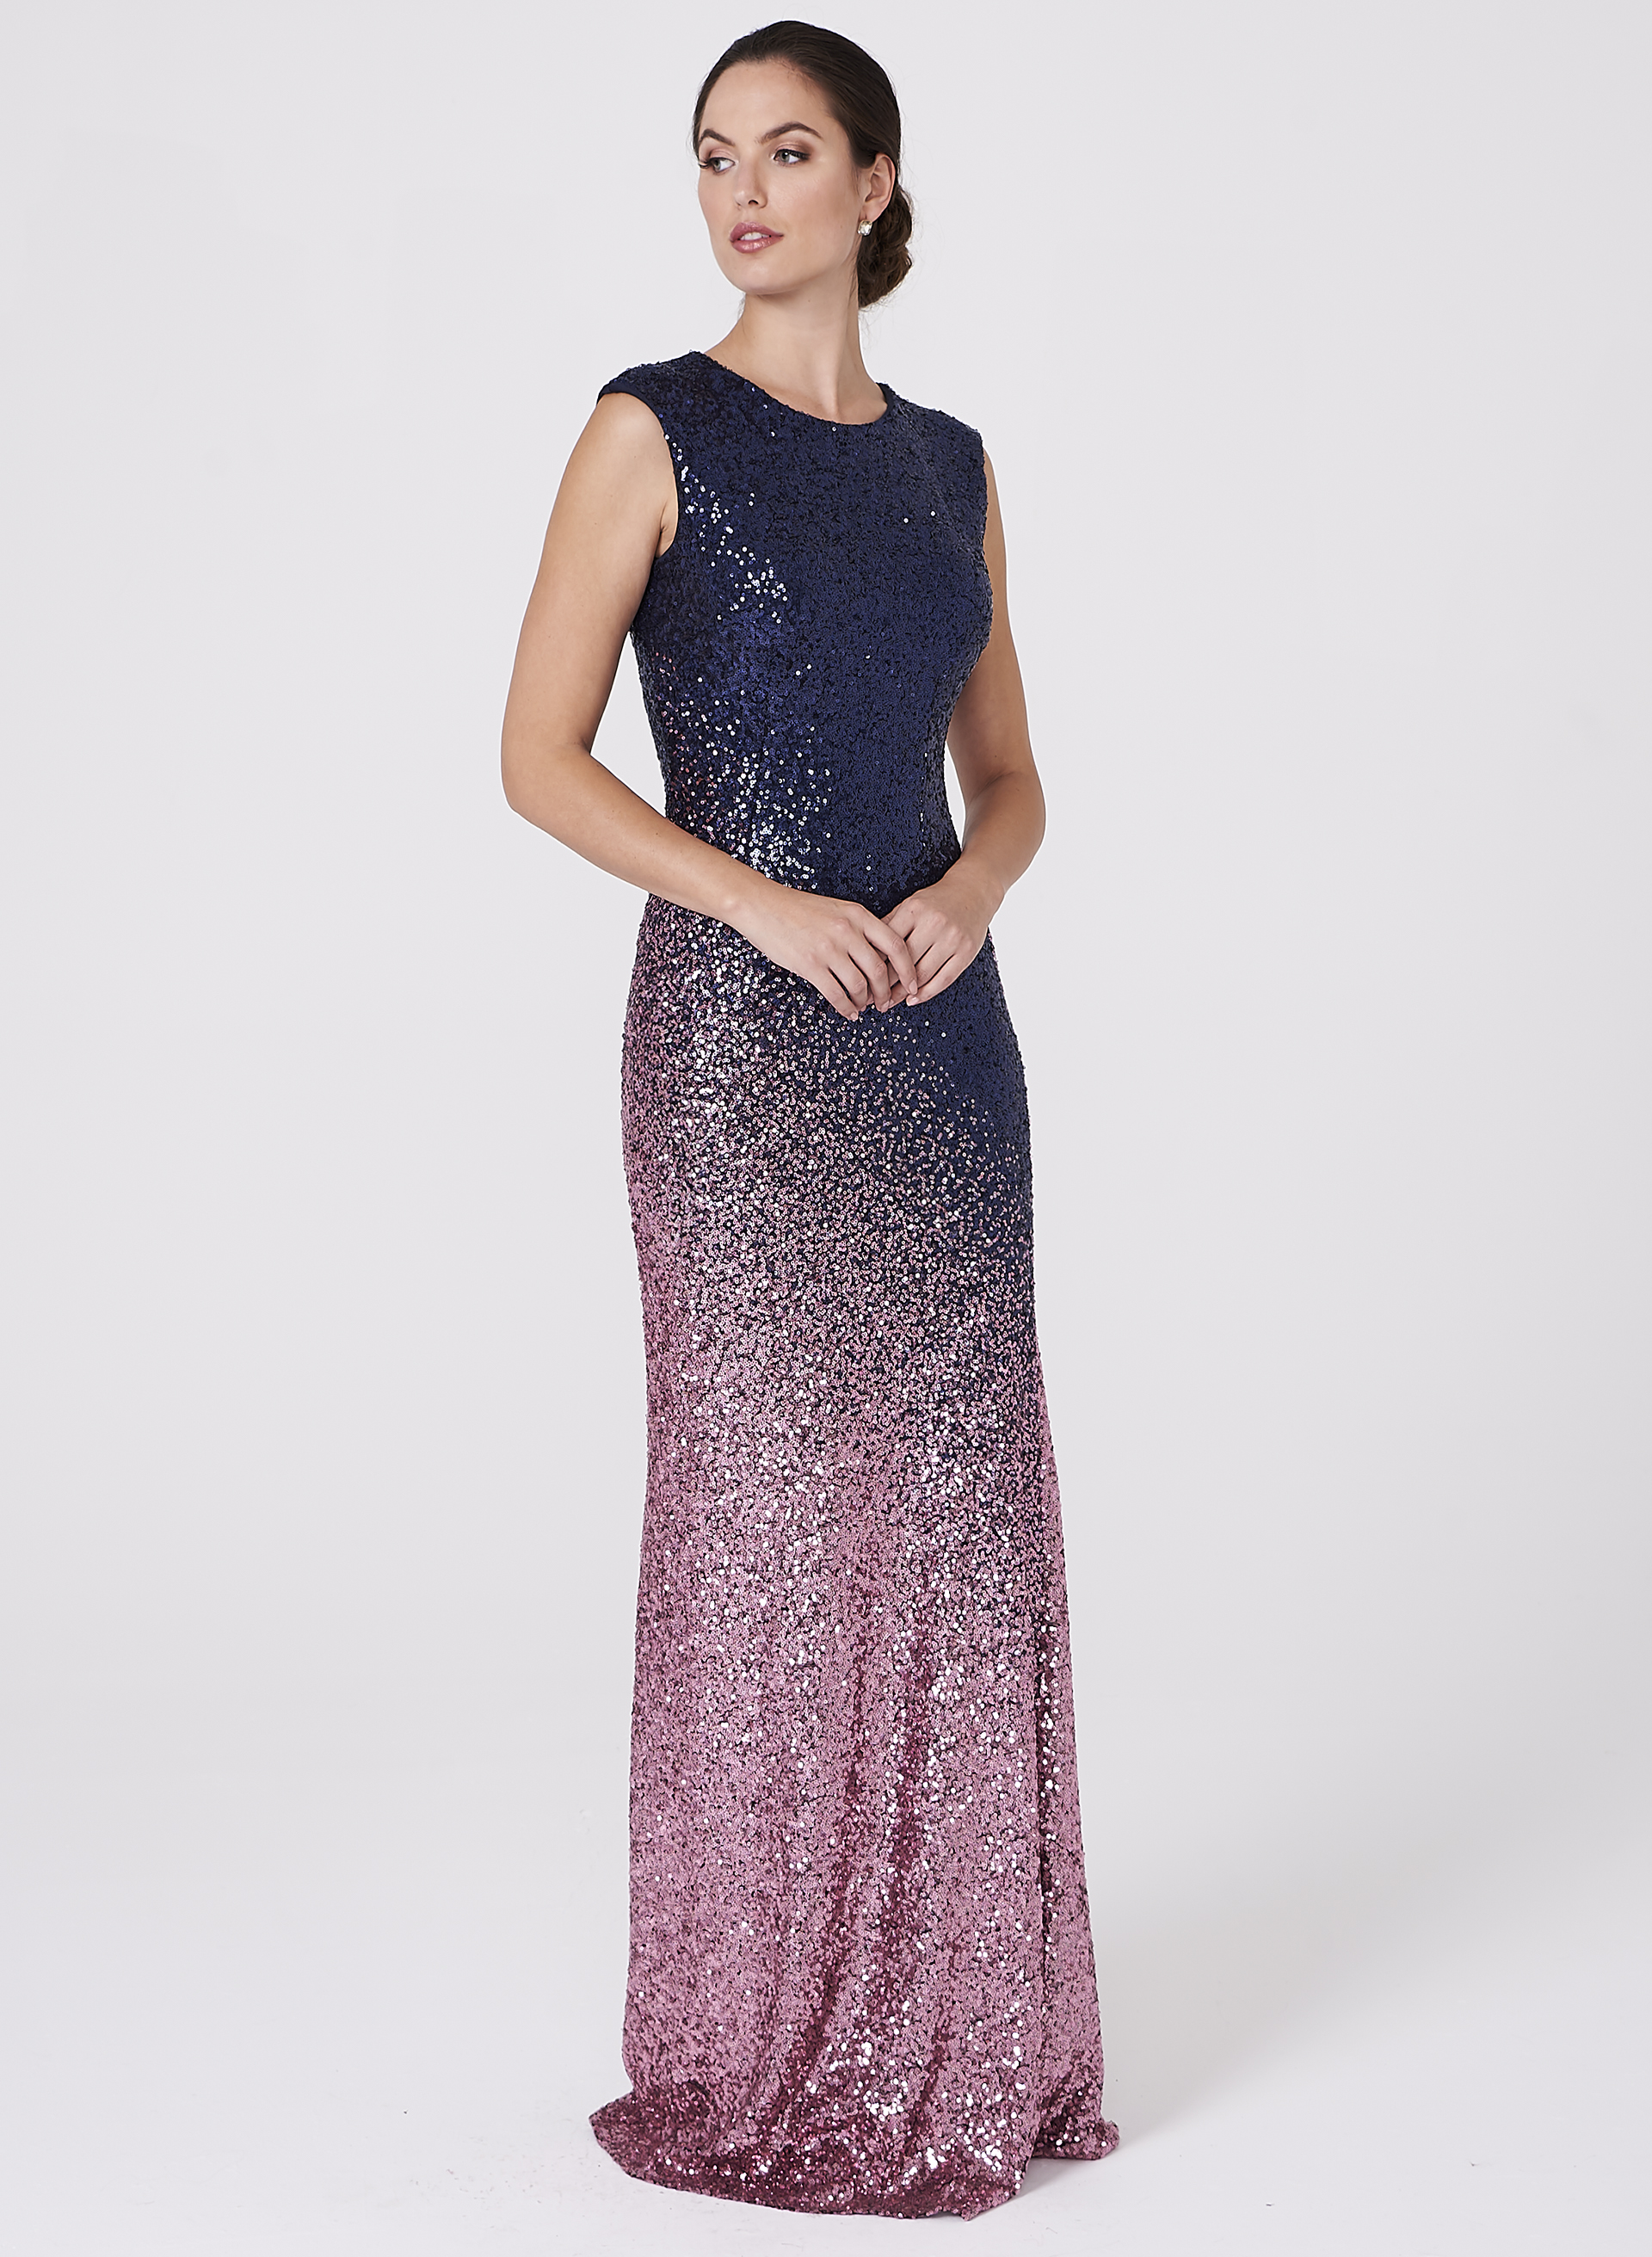 Shop Adrianna Papell Sequined Ombré Gown online at xajk8note.ml Dazzle with every step in this stunning short-sleeve gown from Adrianna Papell, styled with ombré sequins throughout and a /5(2).